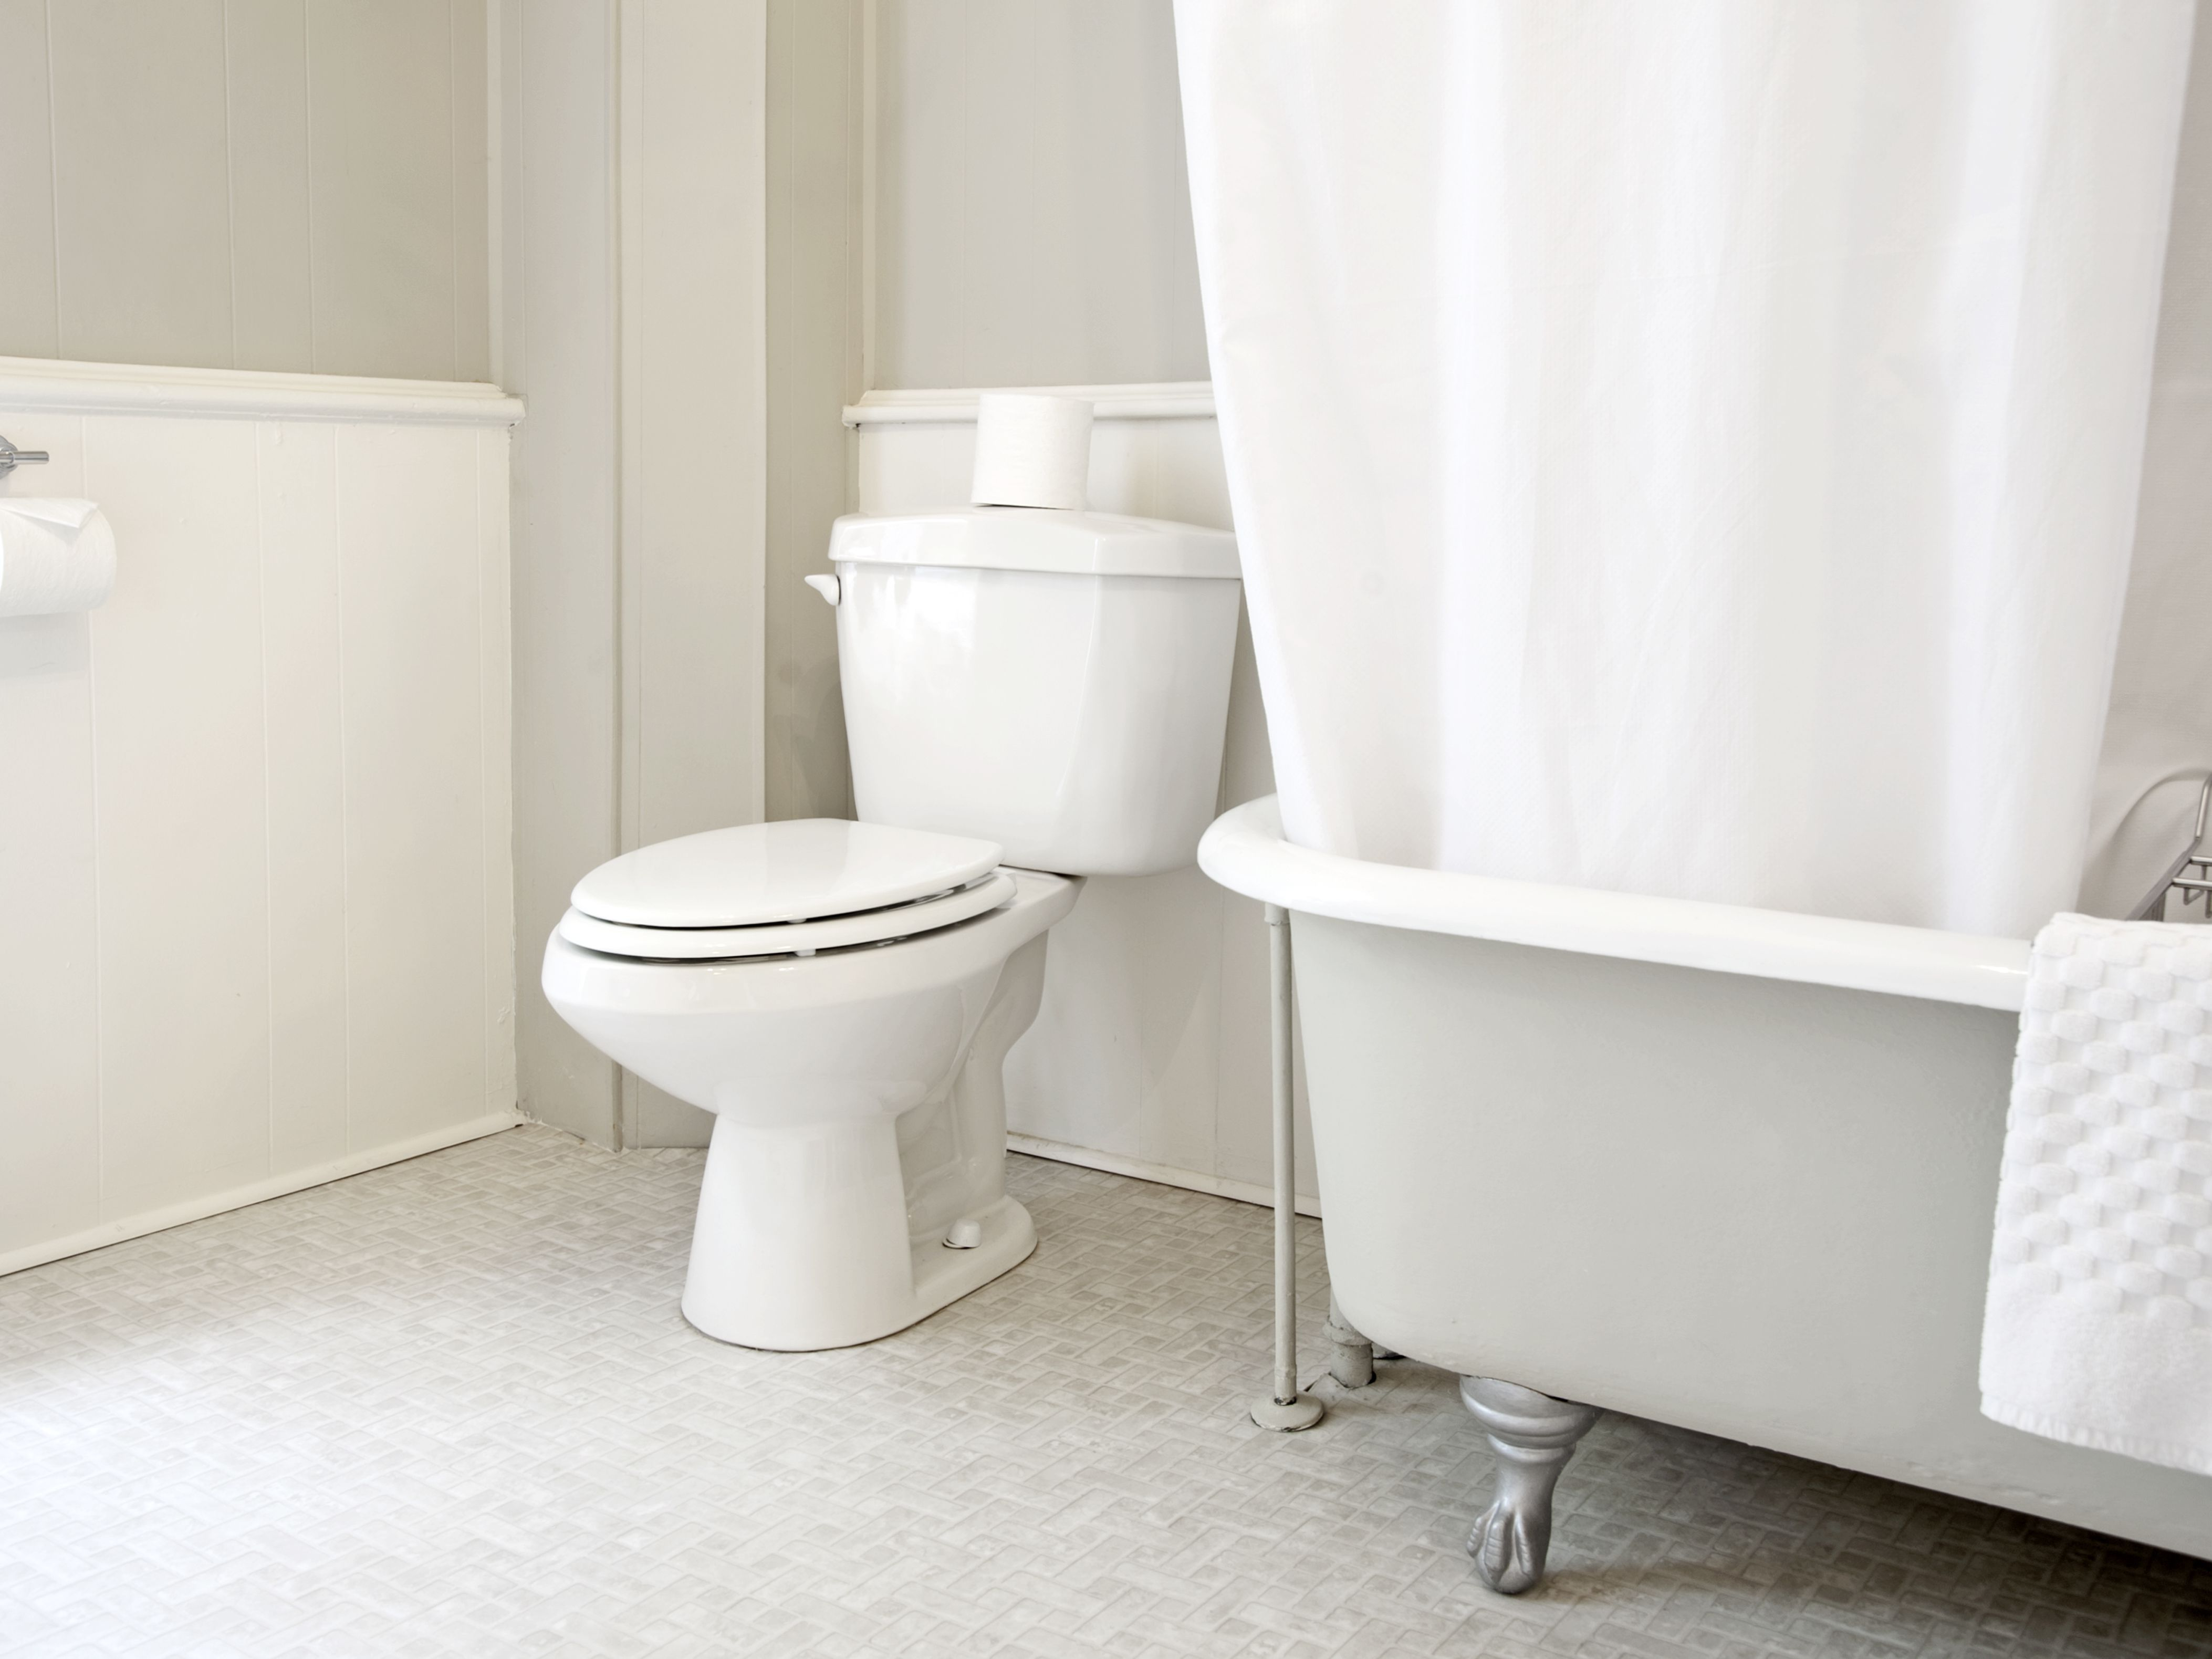 Picture of: Tightening A Loose Toilet Seat